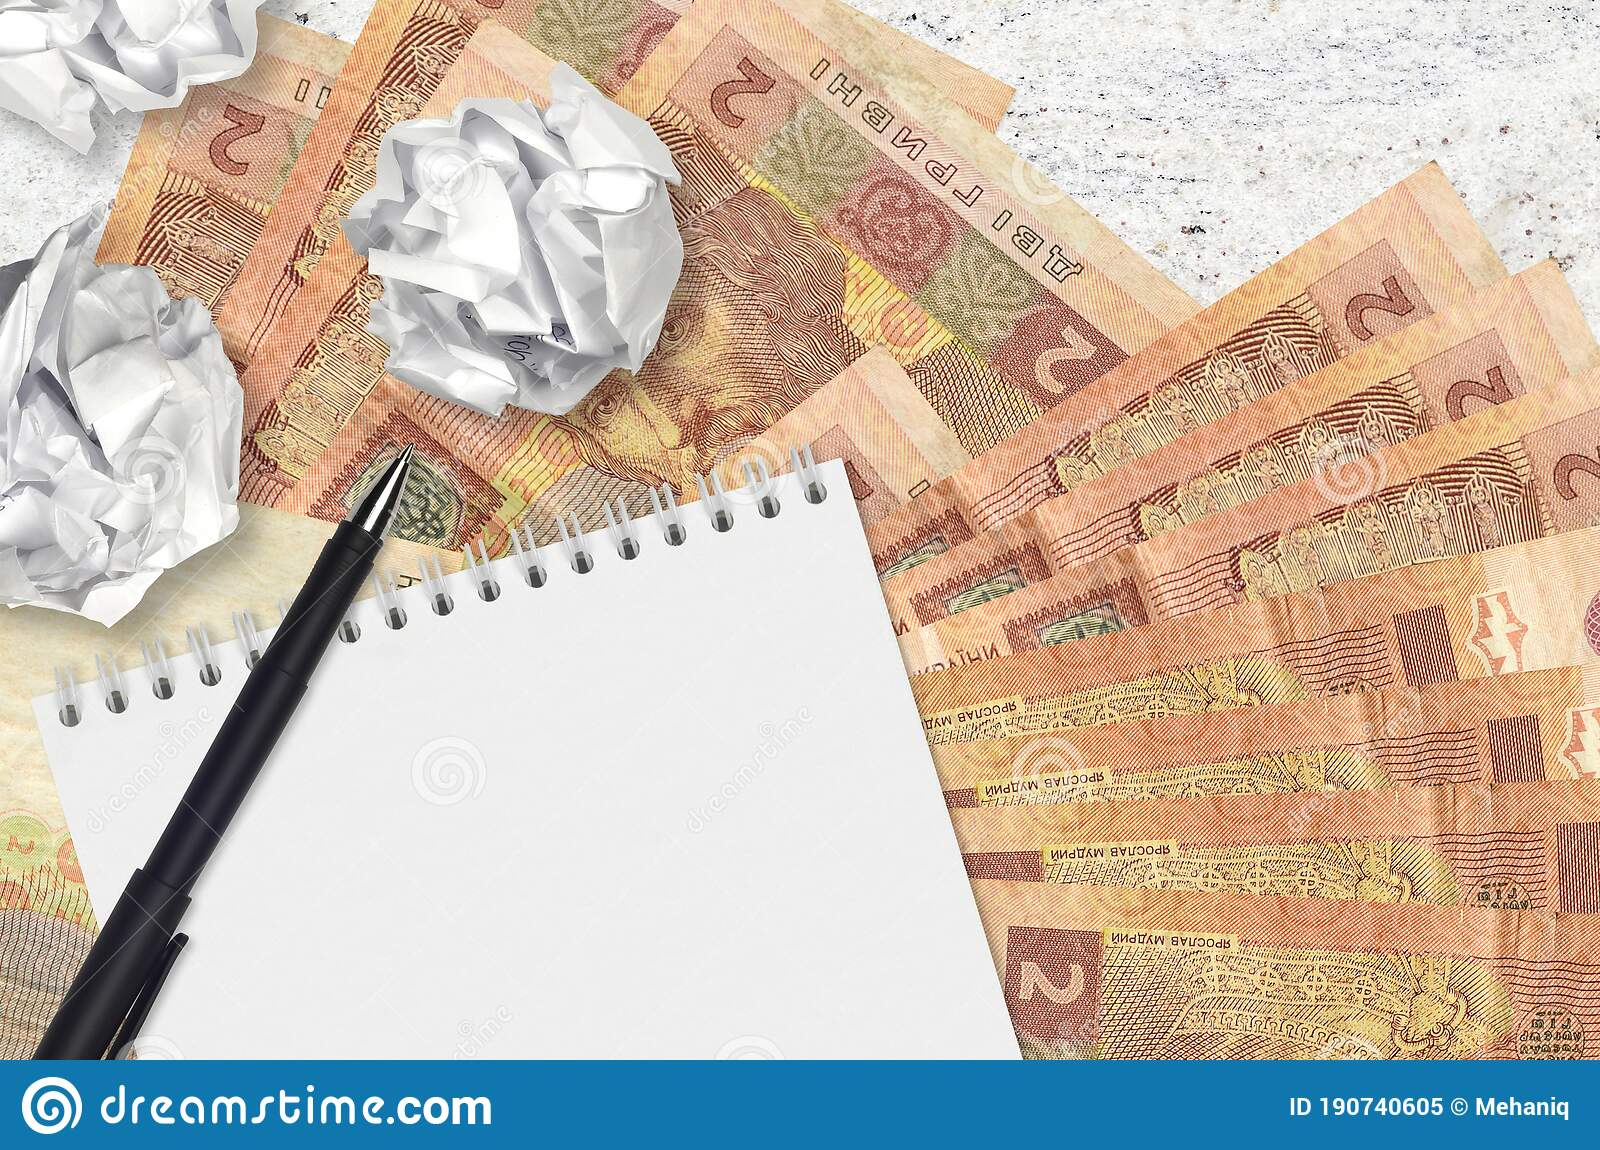 Picture of: 2 Ukrainian Hryvnias Bills And Balls Of Crumpled Paper With Blank Notepad Bad Ideas Or Less Of Inspiration Concept Searching Stock Image Image Of Bills Business 190740605